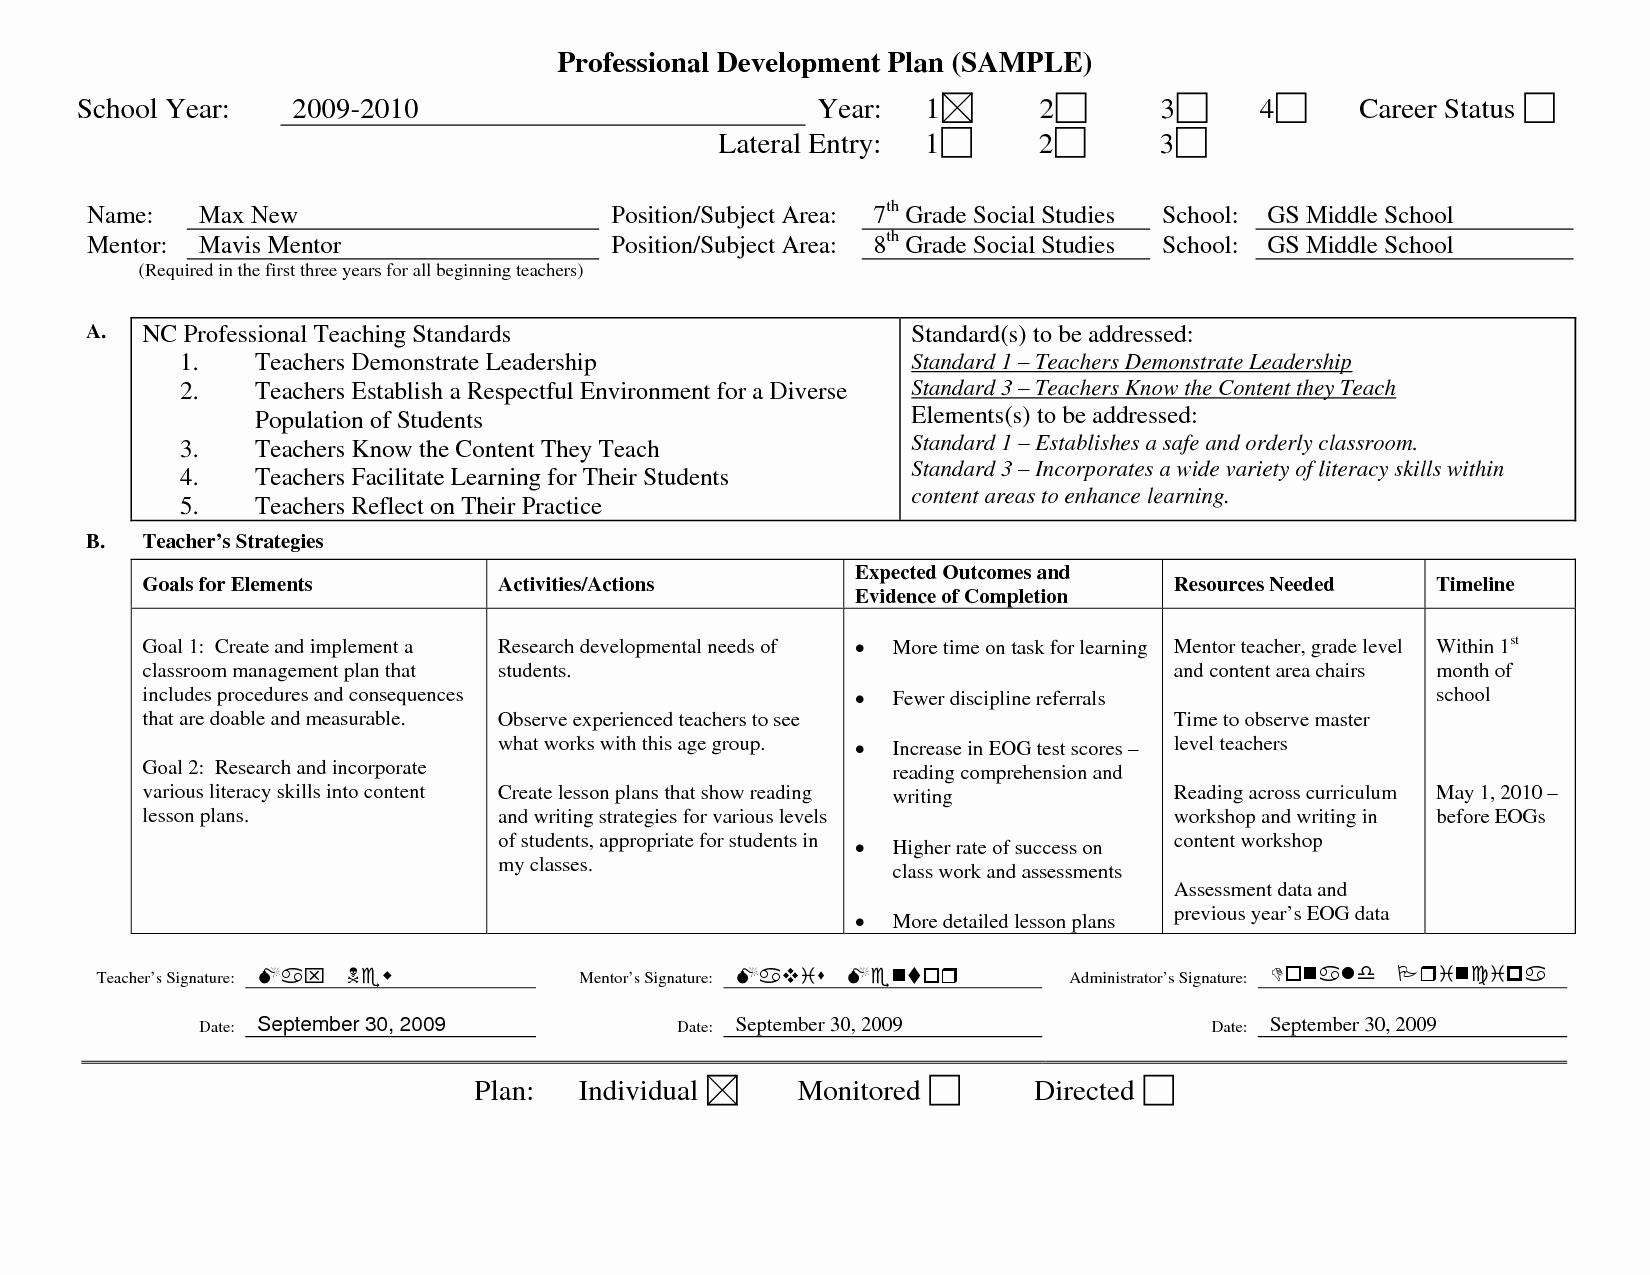 Professional Development Plan Sample for Teachers Fresh Professional Learning Plan Examples Google Search